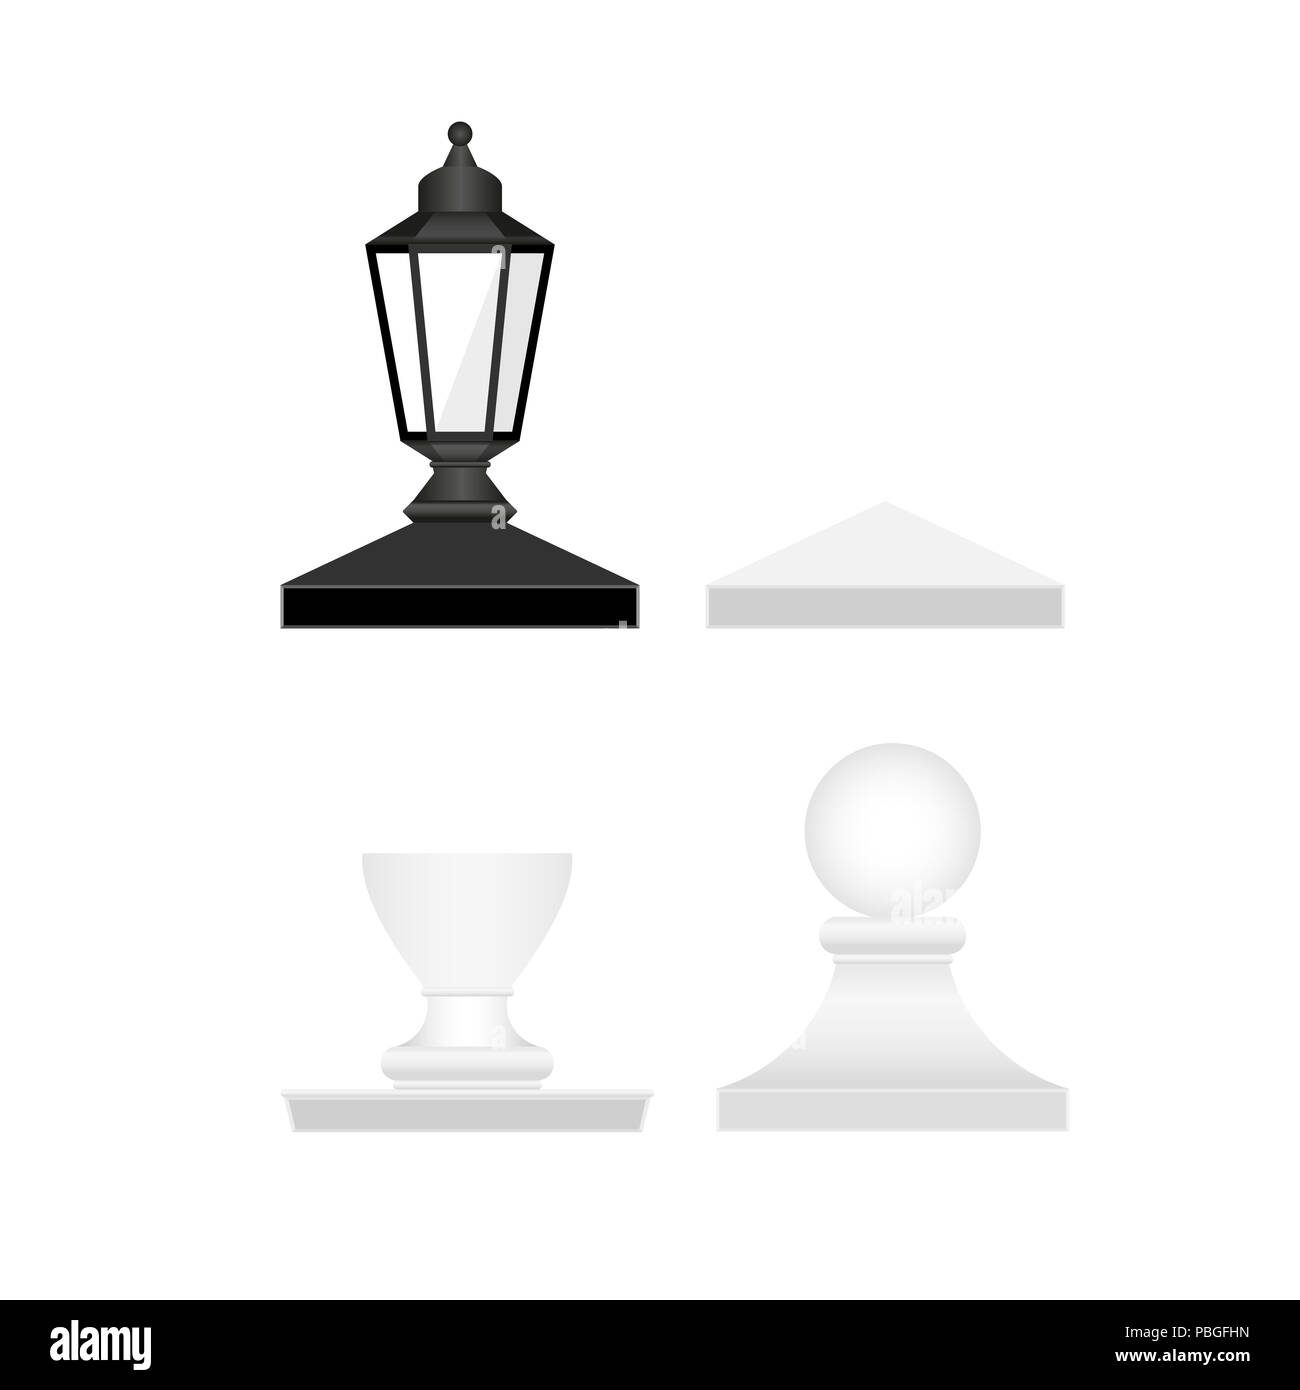 Street Lamp and Fence Posts Tops. Design Elements Set for Web Design, Banners, Presentations or Business Cards, Flyers, Brochures and Posters. - Stock Image